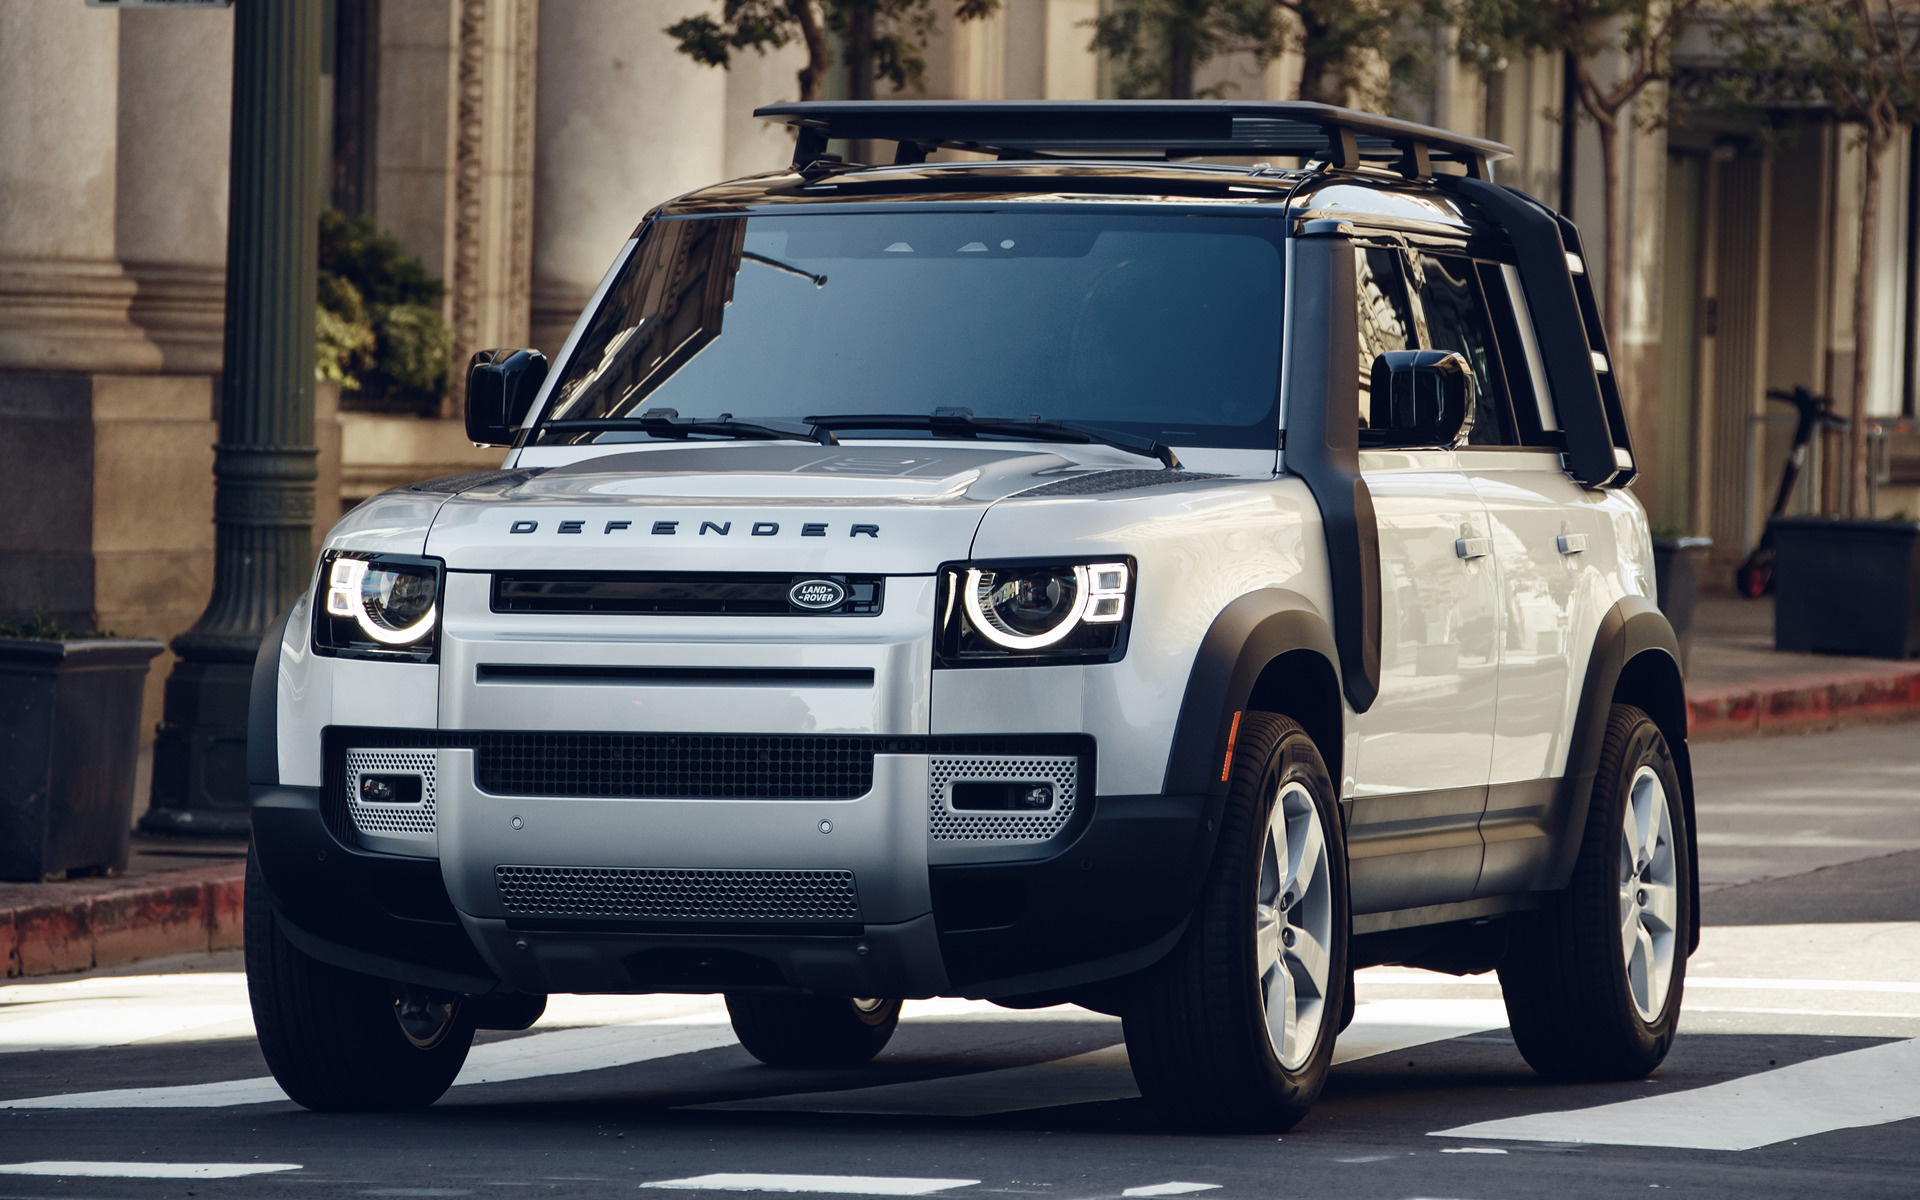 2021 Land Rover Defender 110 Explorer Pack (US) - Masaüstü ...